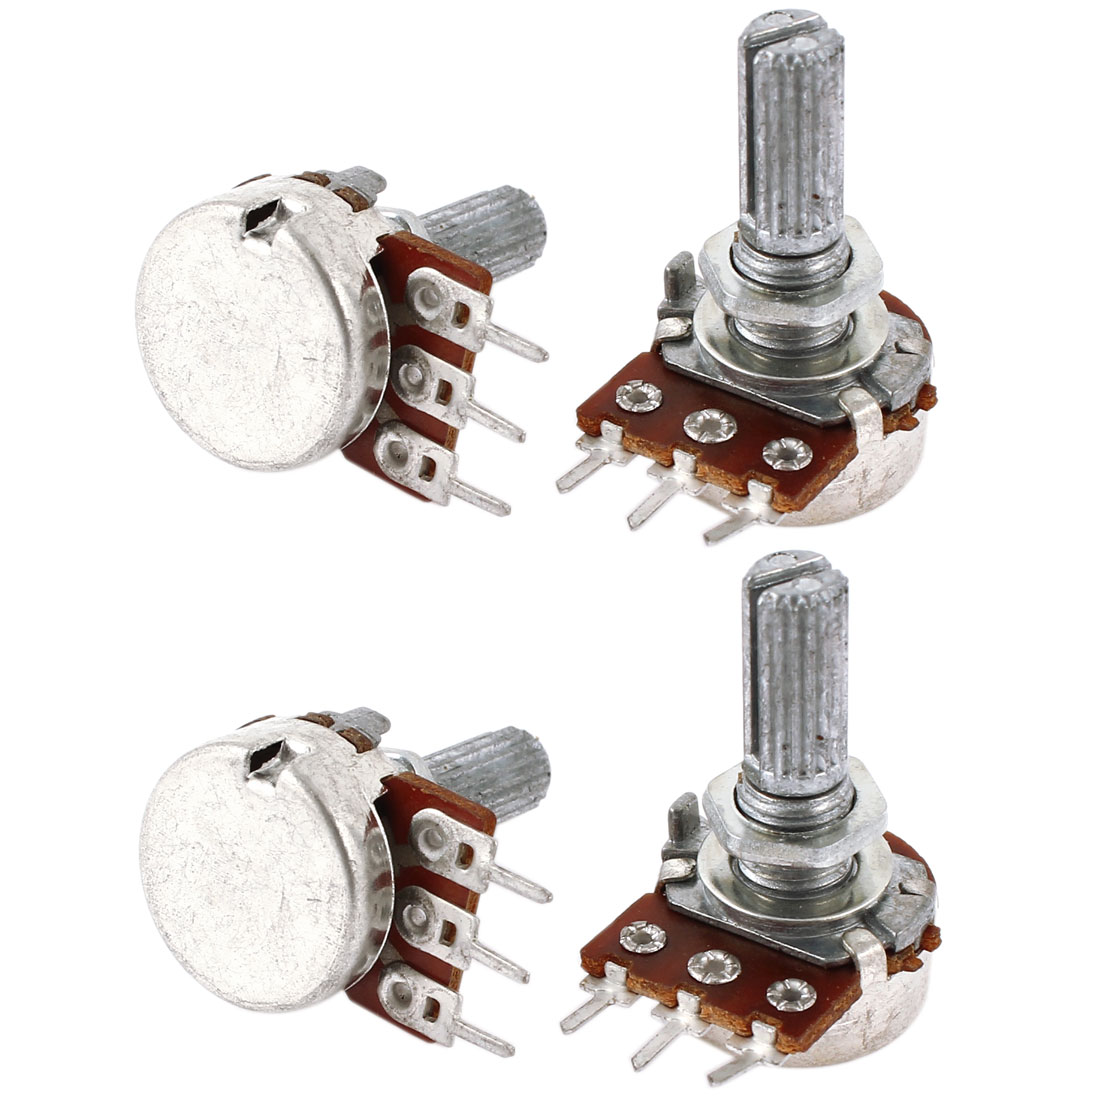 4 Pcs Type B Single Linear 20mm Shaft Rotary Taper Potentiometers B1K 1K Ohm